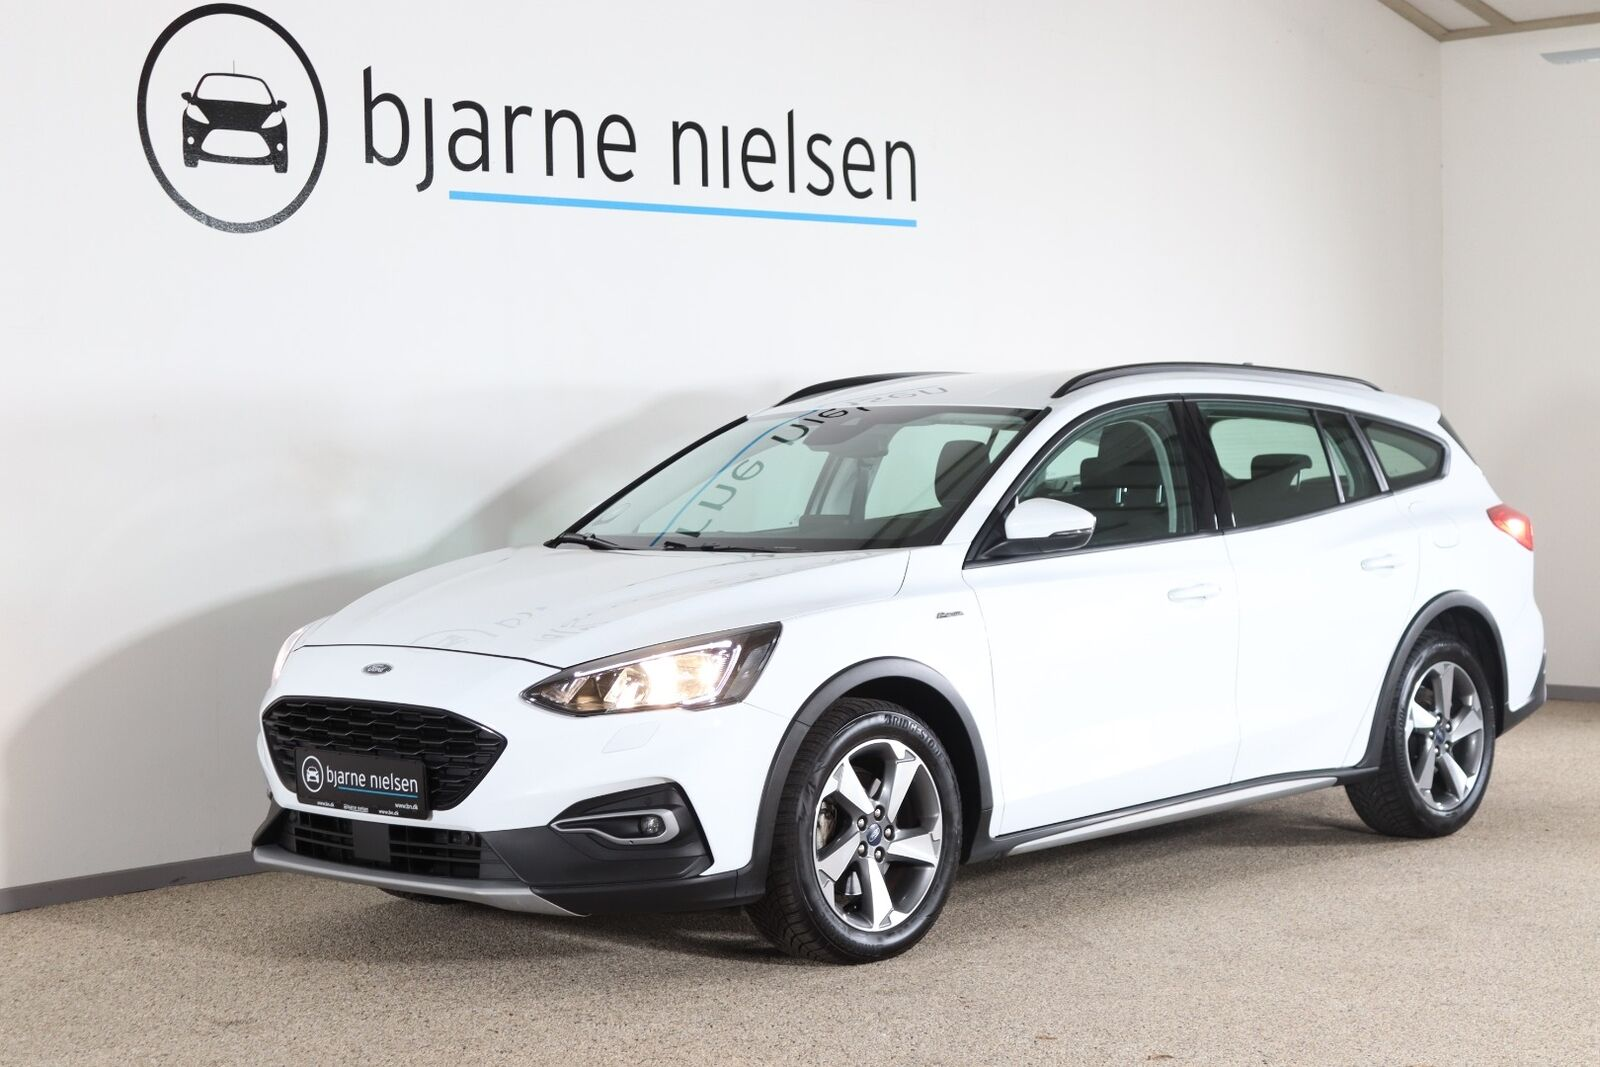 Ford Focus 1,0 EcoBoost Active Business stc. 5d - 249.900 kr.